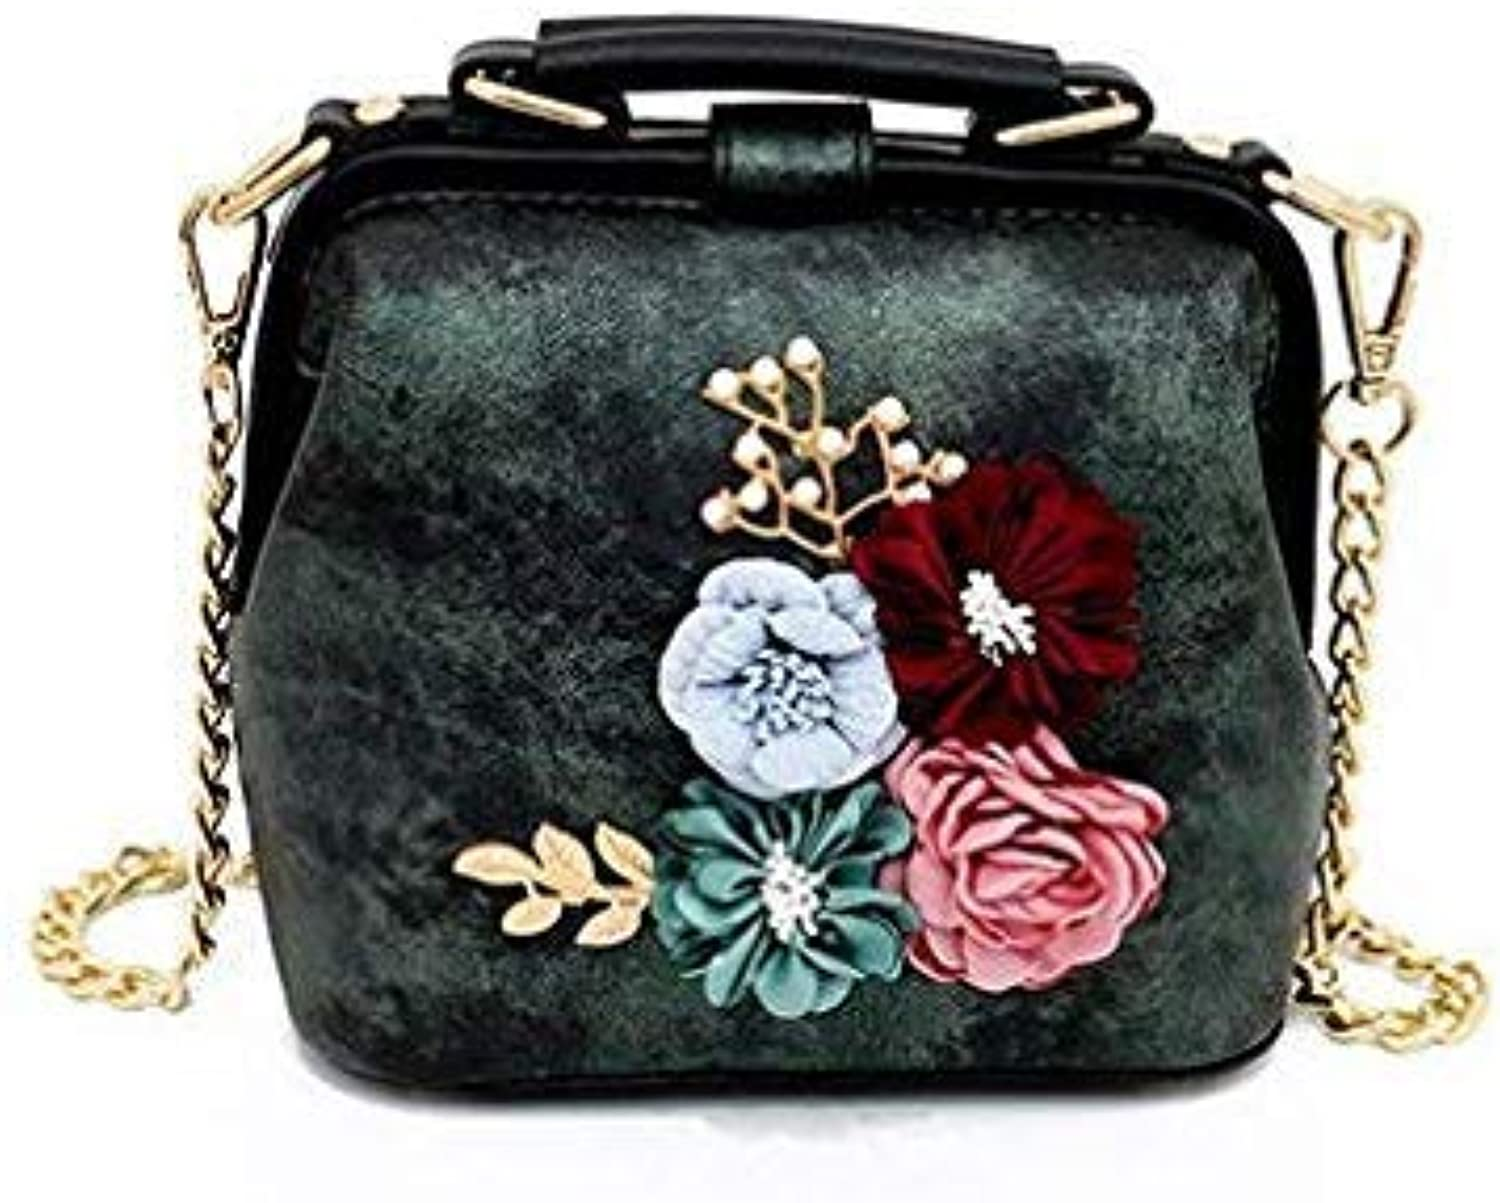 Bloomerang New Women Shell Bags High Quality PU Leather Crossbody Bags Fashion Chain Floral Female Handbags Luxury Appliques Tote Bags color Green 21cm6cm15cm